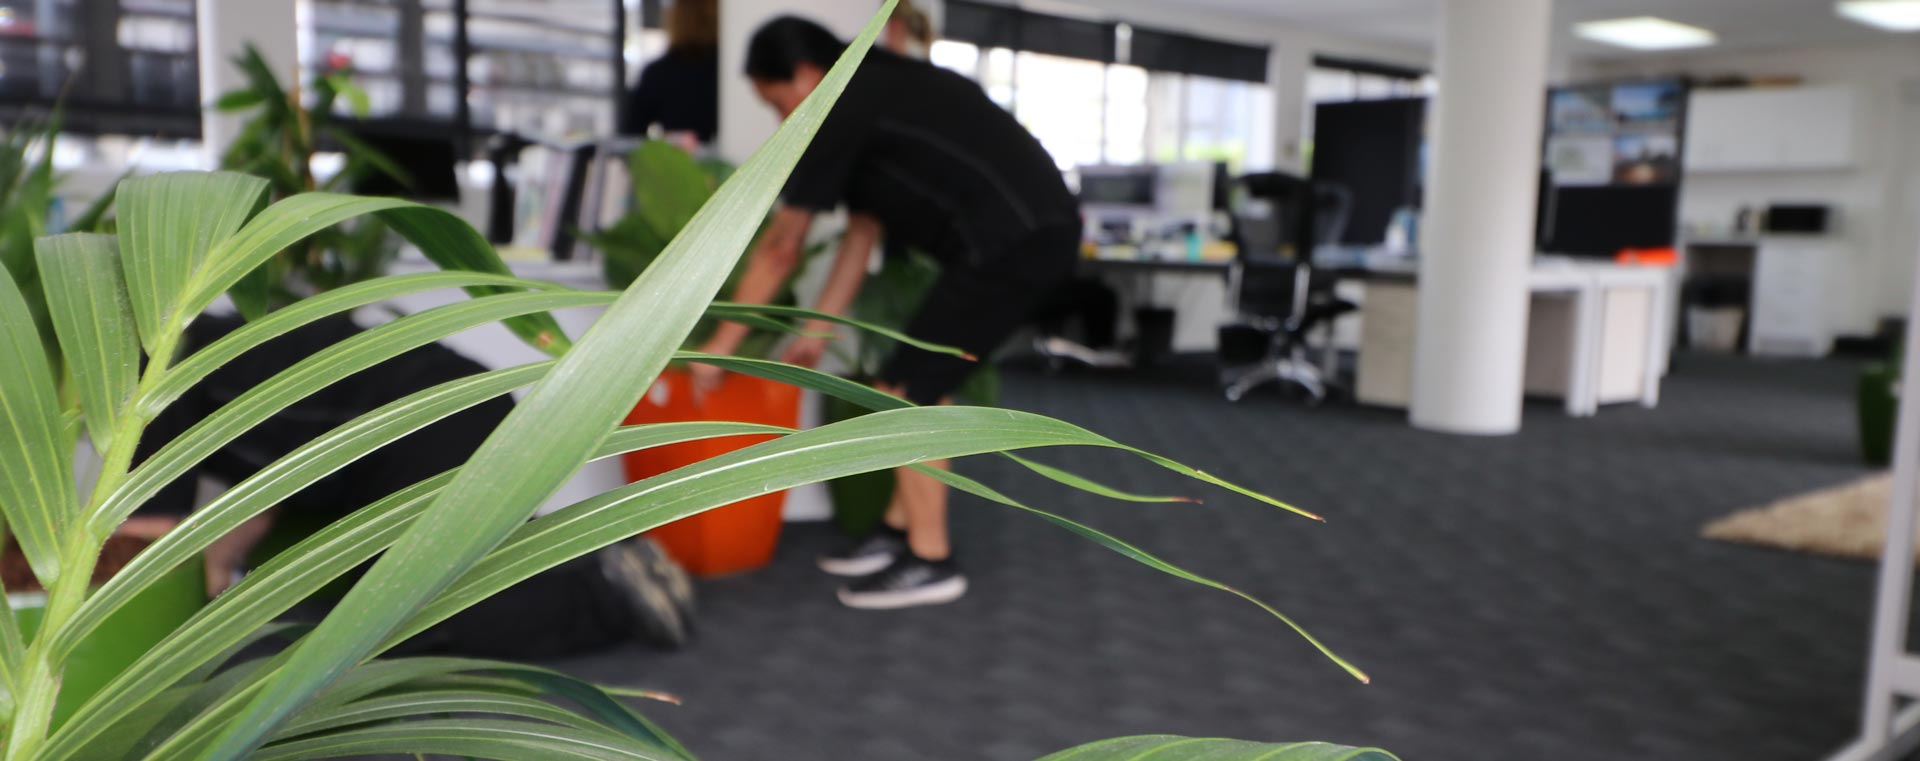 Indoor Plants For The Office Resetting A Takapuna Office With Indoor Plants The Plant People